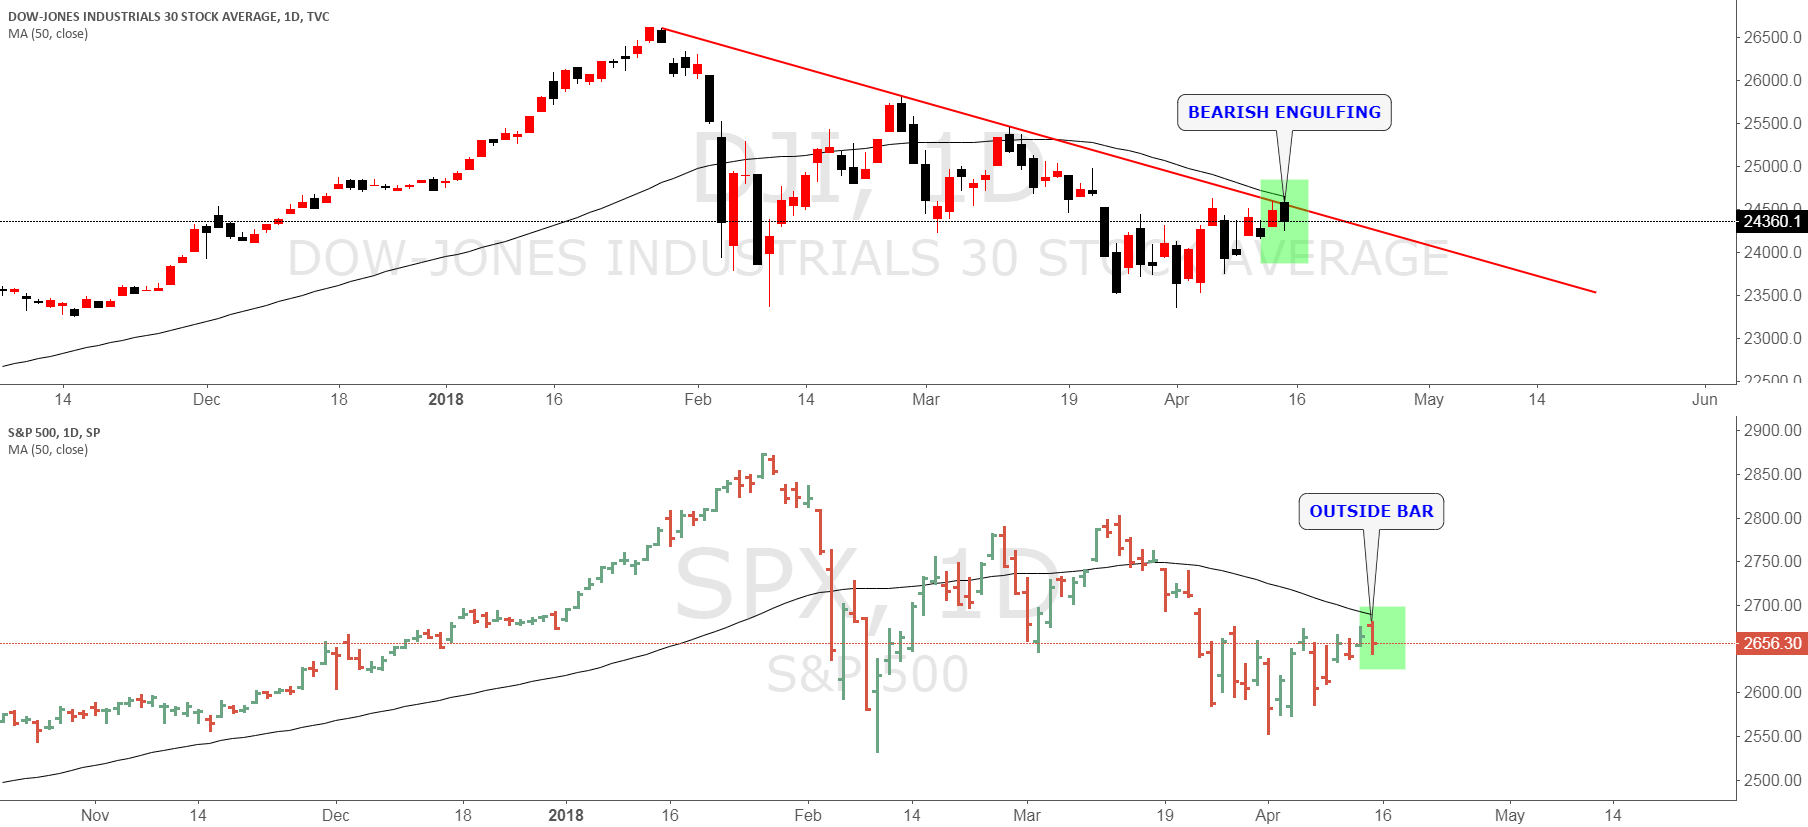 DOW & SPX500 corrective activity is likely to be brief